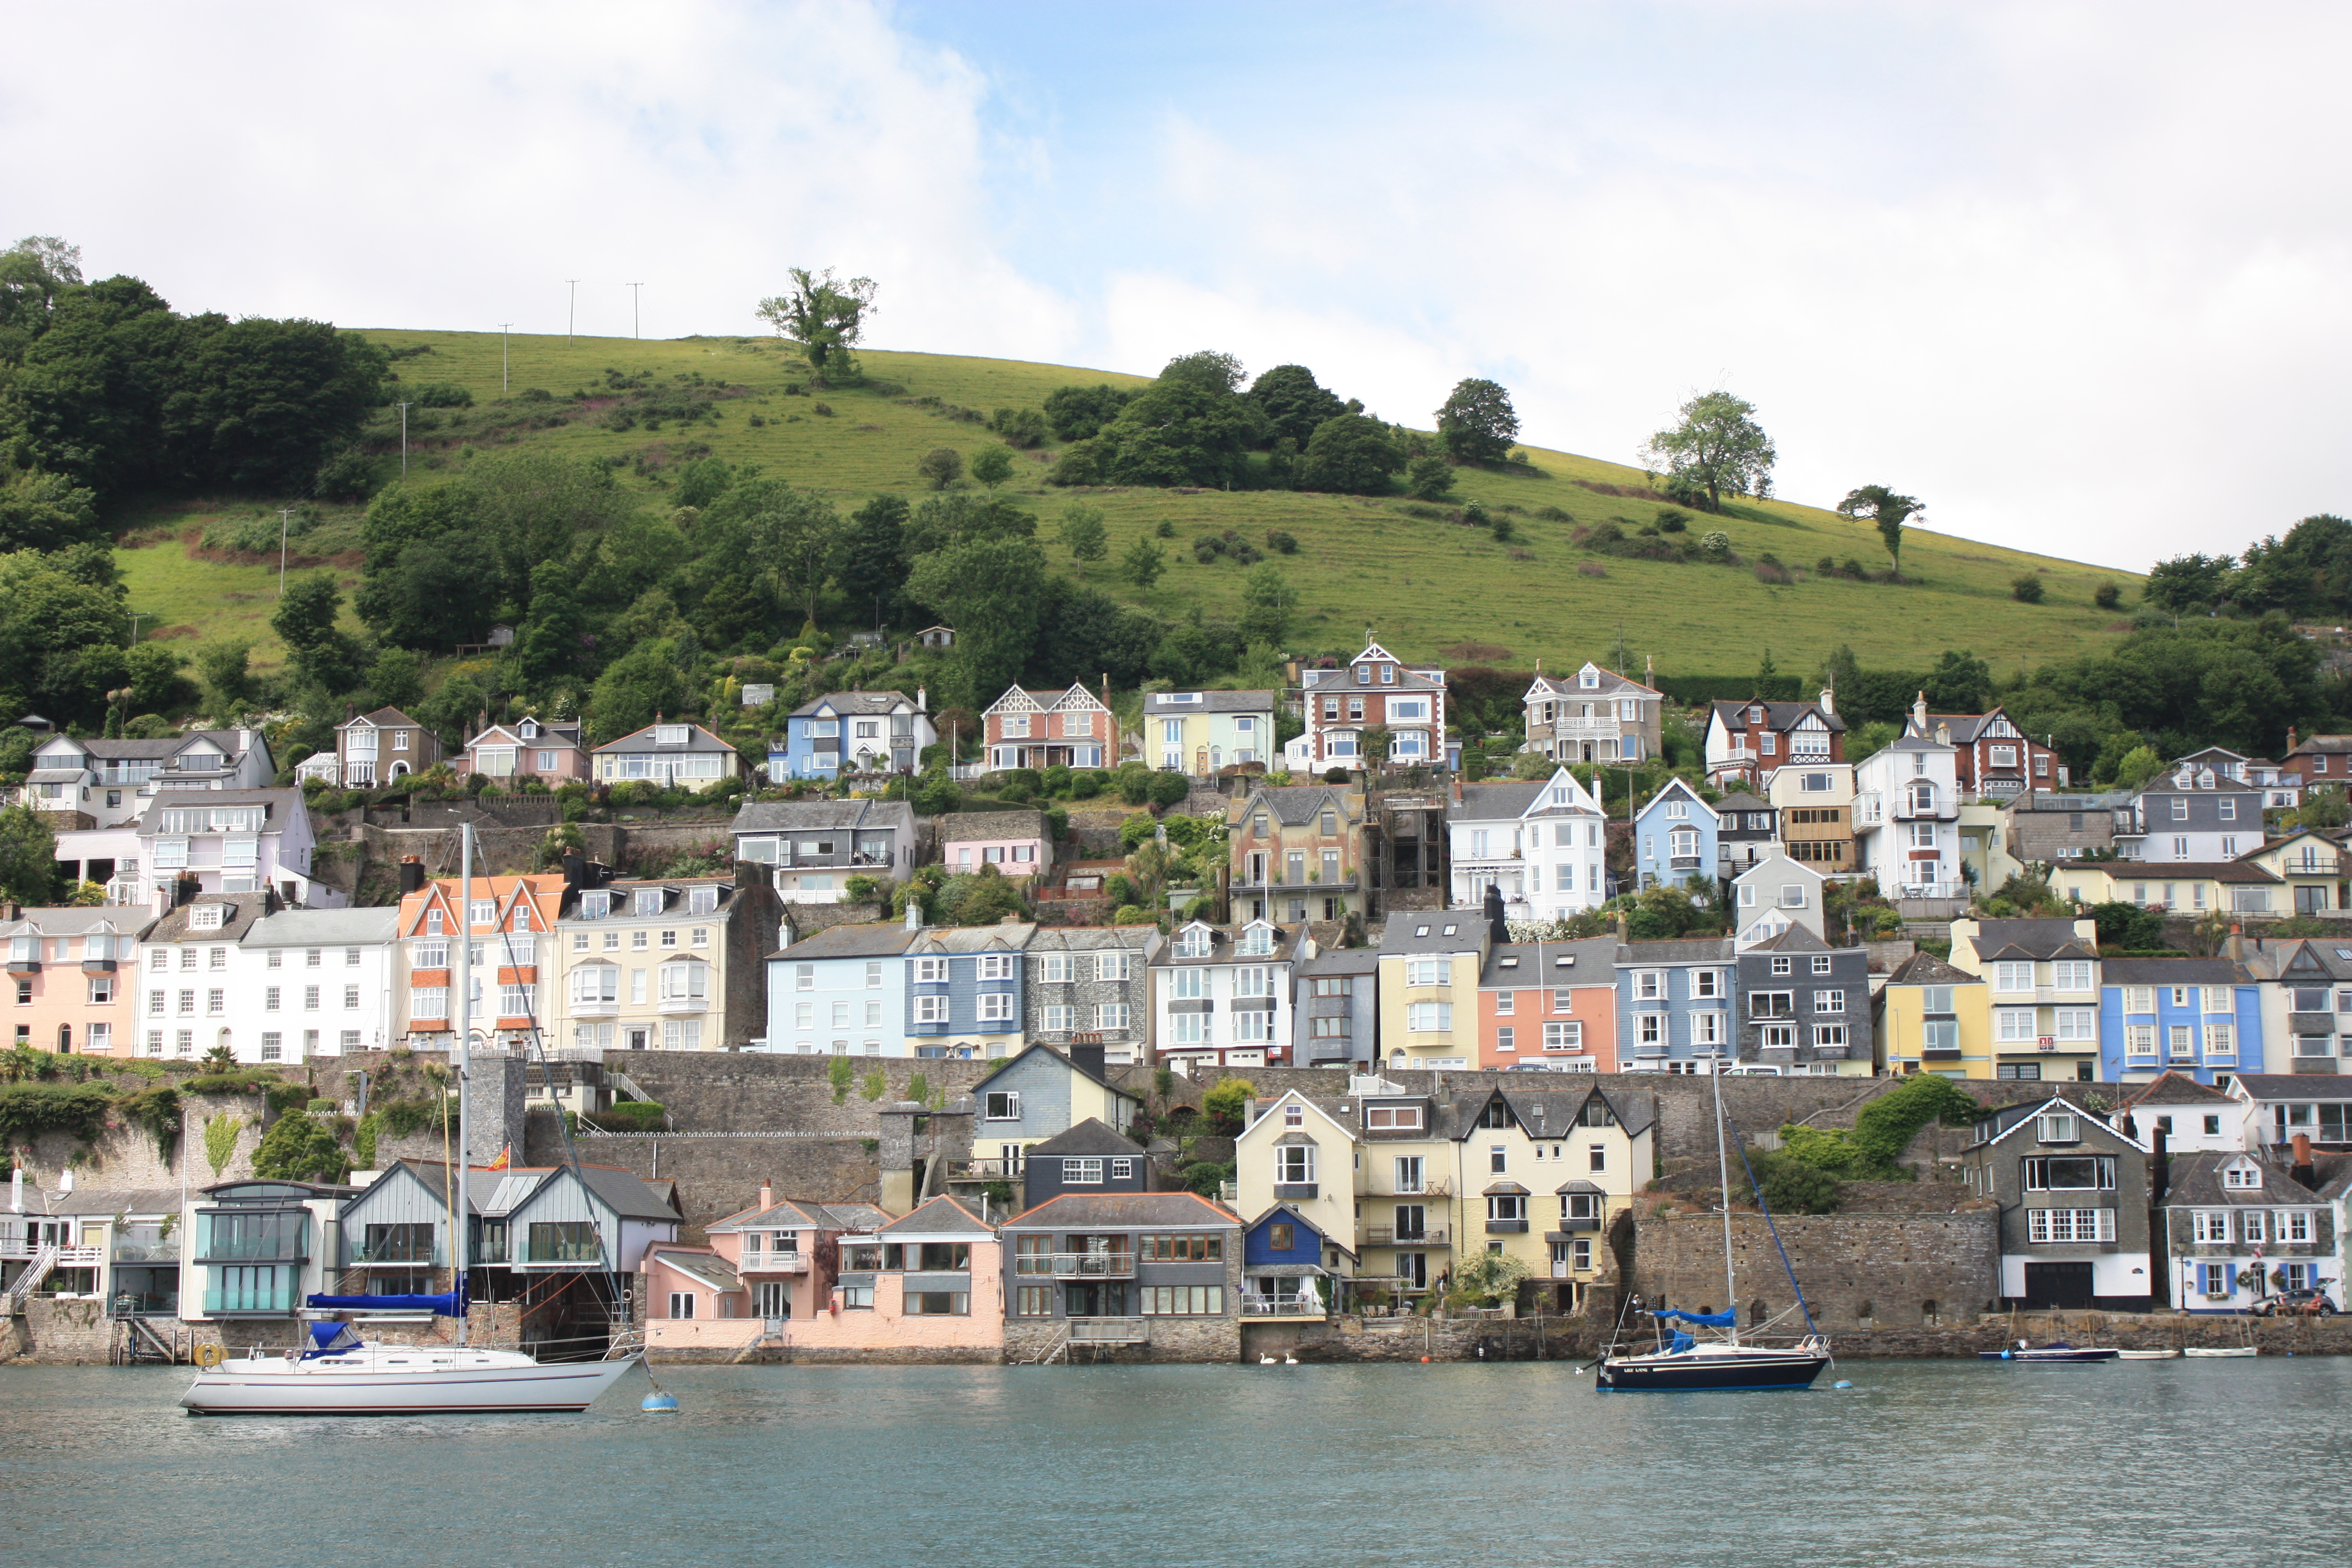 View from the lower ferry to Dartmouth